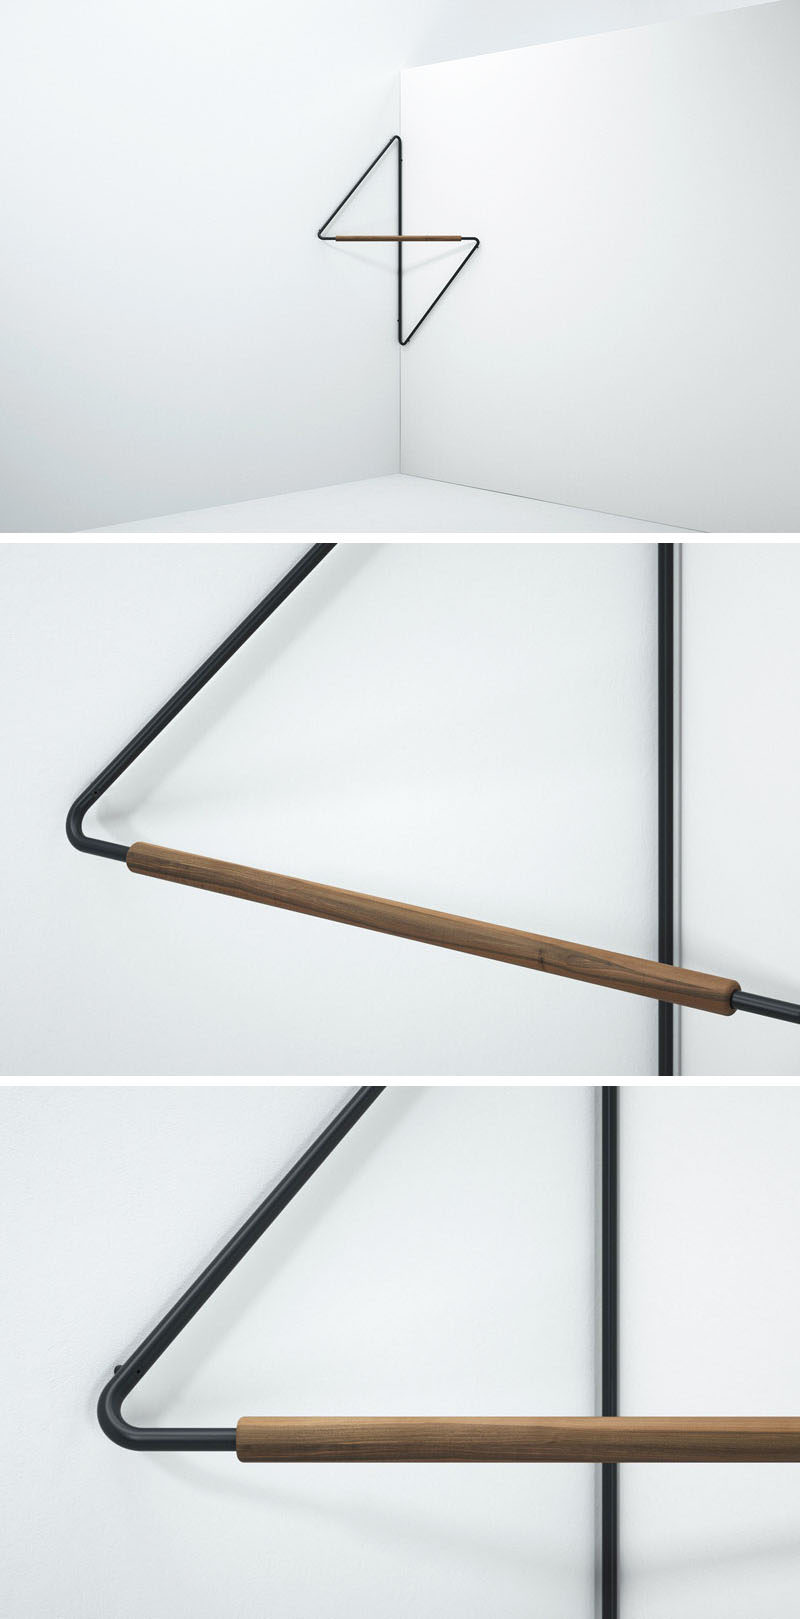 Ugao is a minimalist clothes rack that's been designed to save space and neatly fit into the corner of a room. #ClothesRack #ClothesHanger #Design